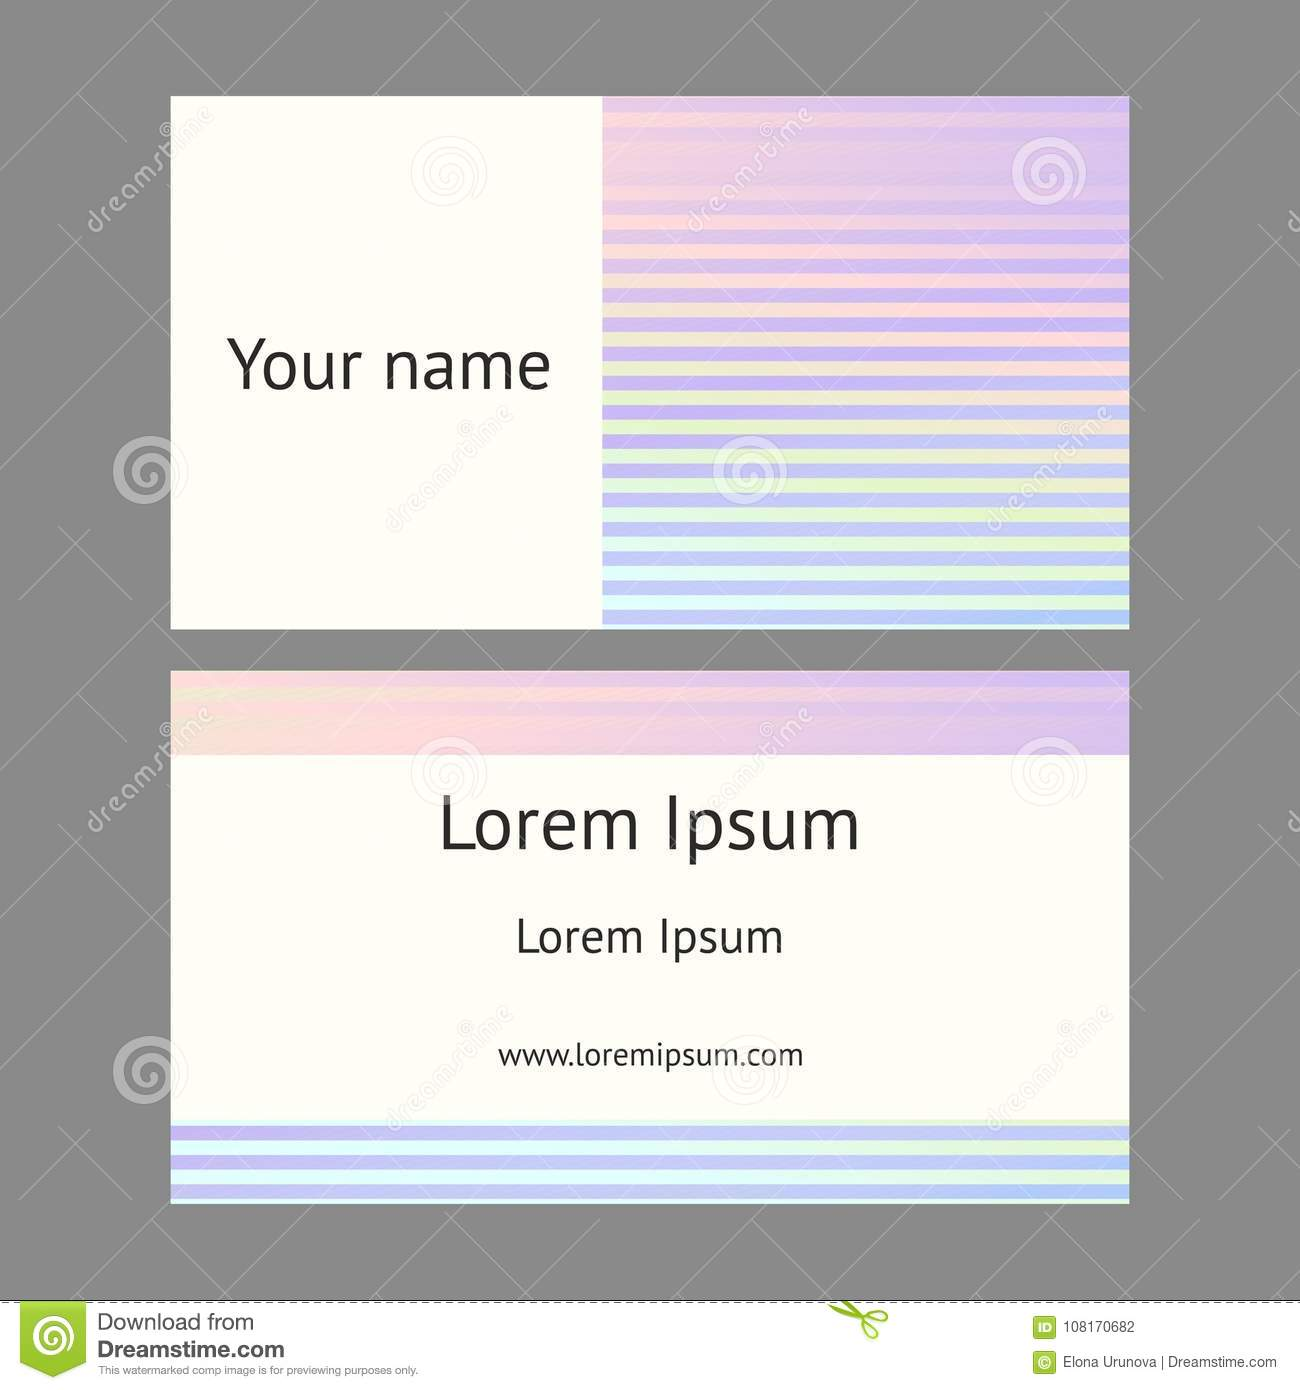 Business card decorative holographic background stock vector download business card decorative holographic background stock vector illustration of decorative outline colourmoves